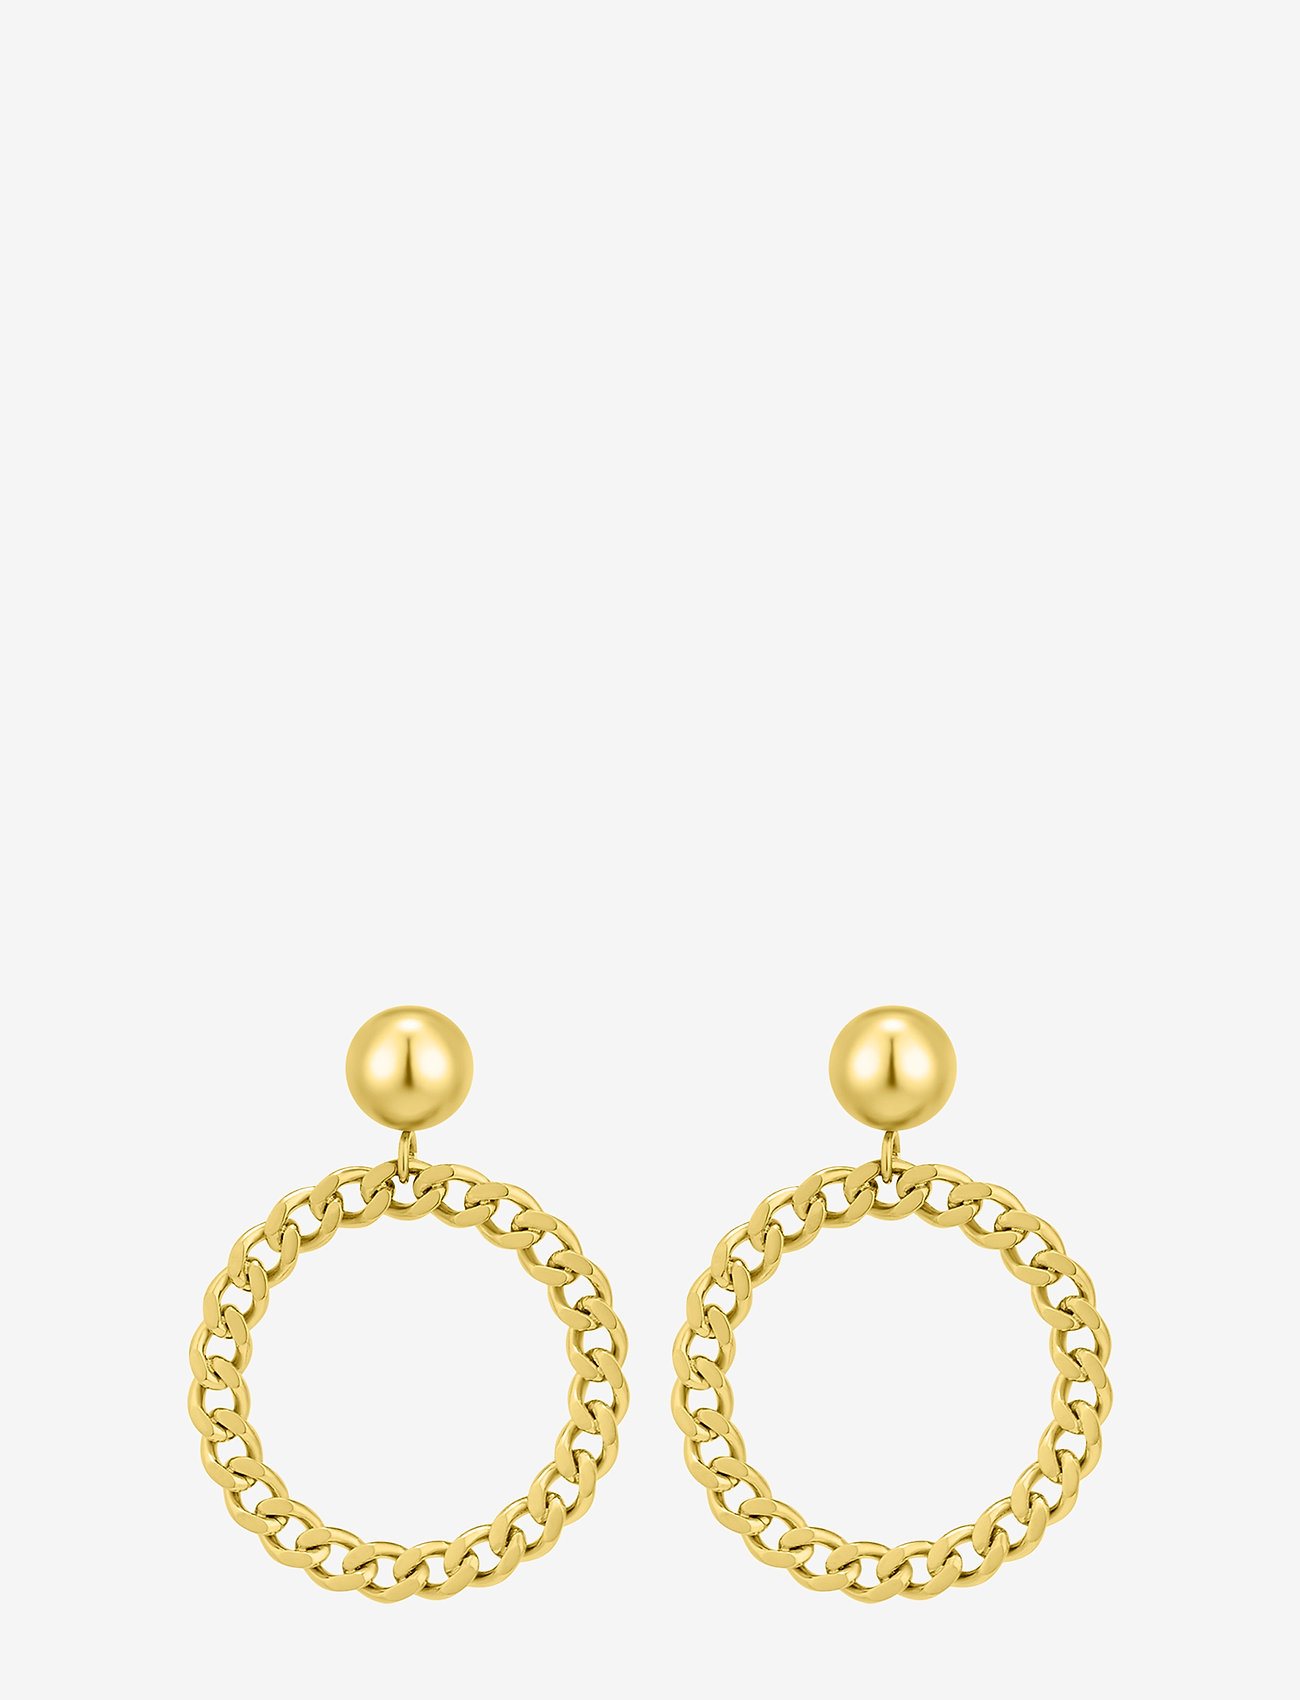 Bud to rose - Devious Chain Earring Steel - pendant - gold - 1